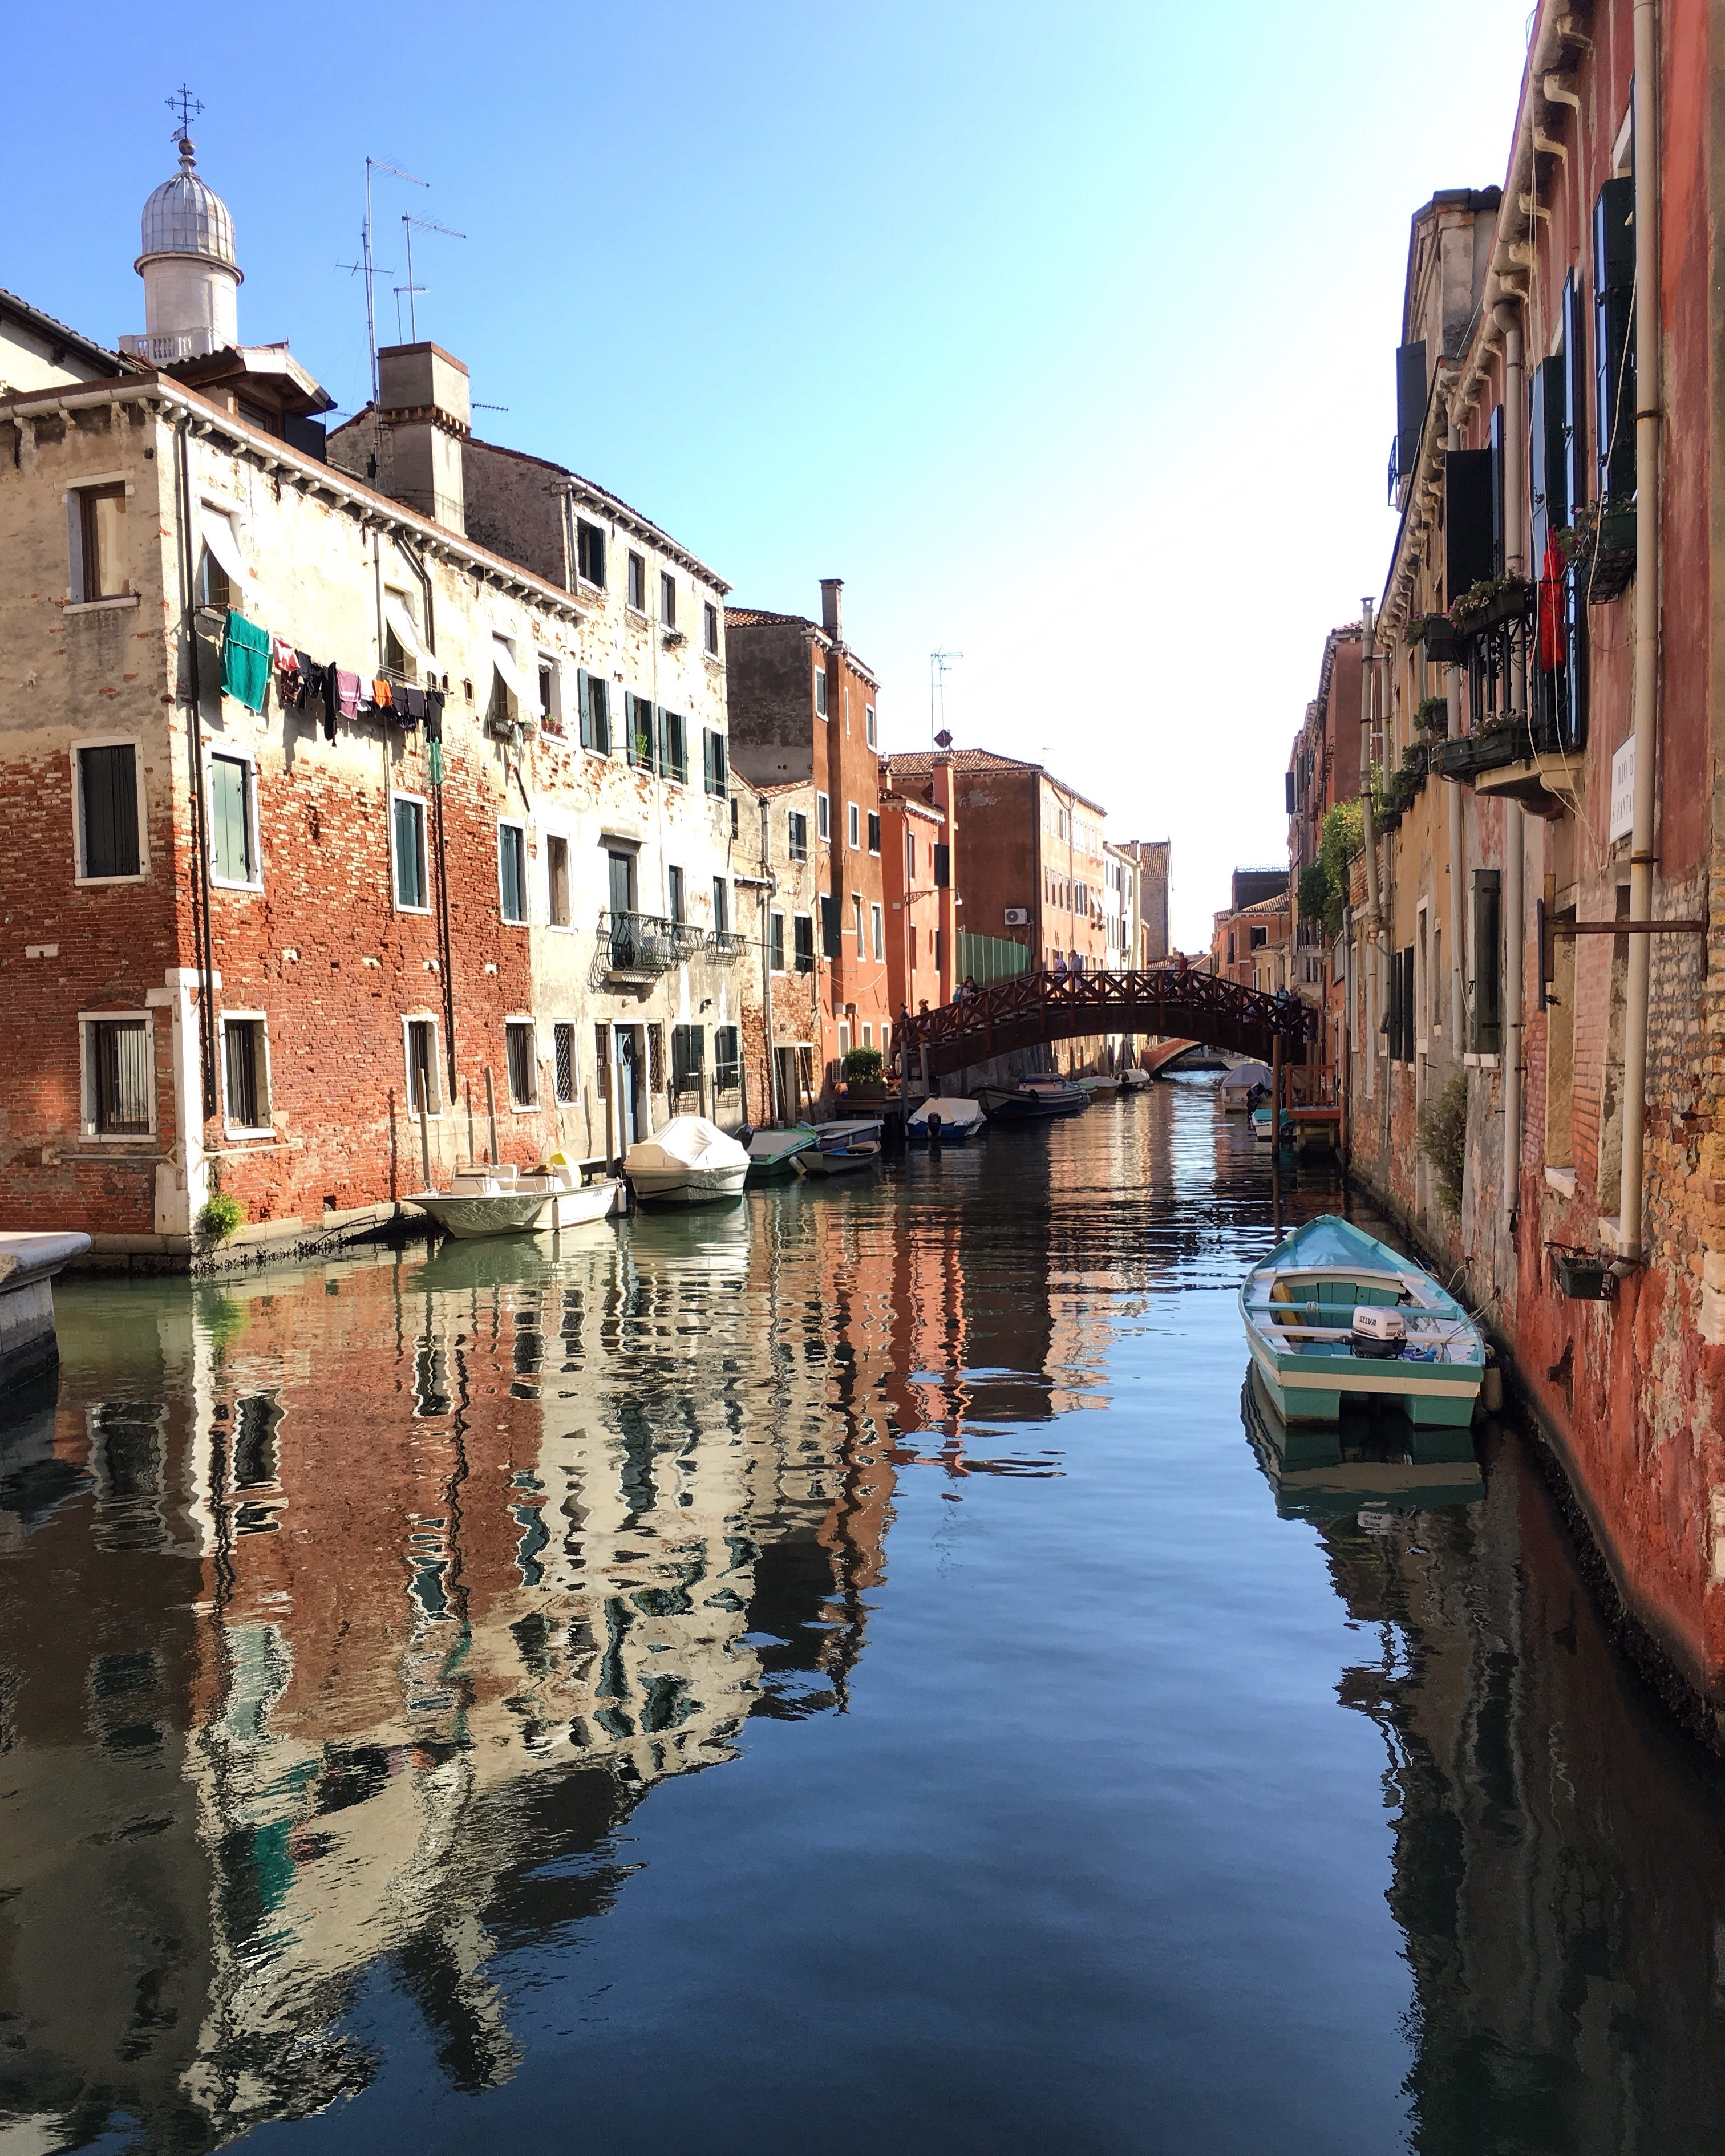 Venice boat on canal